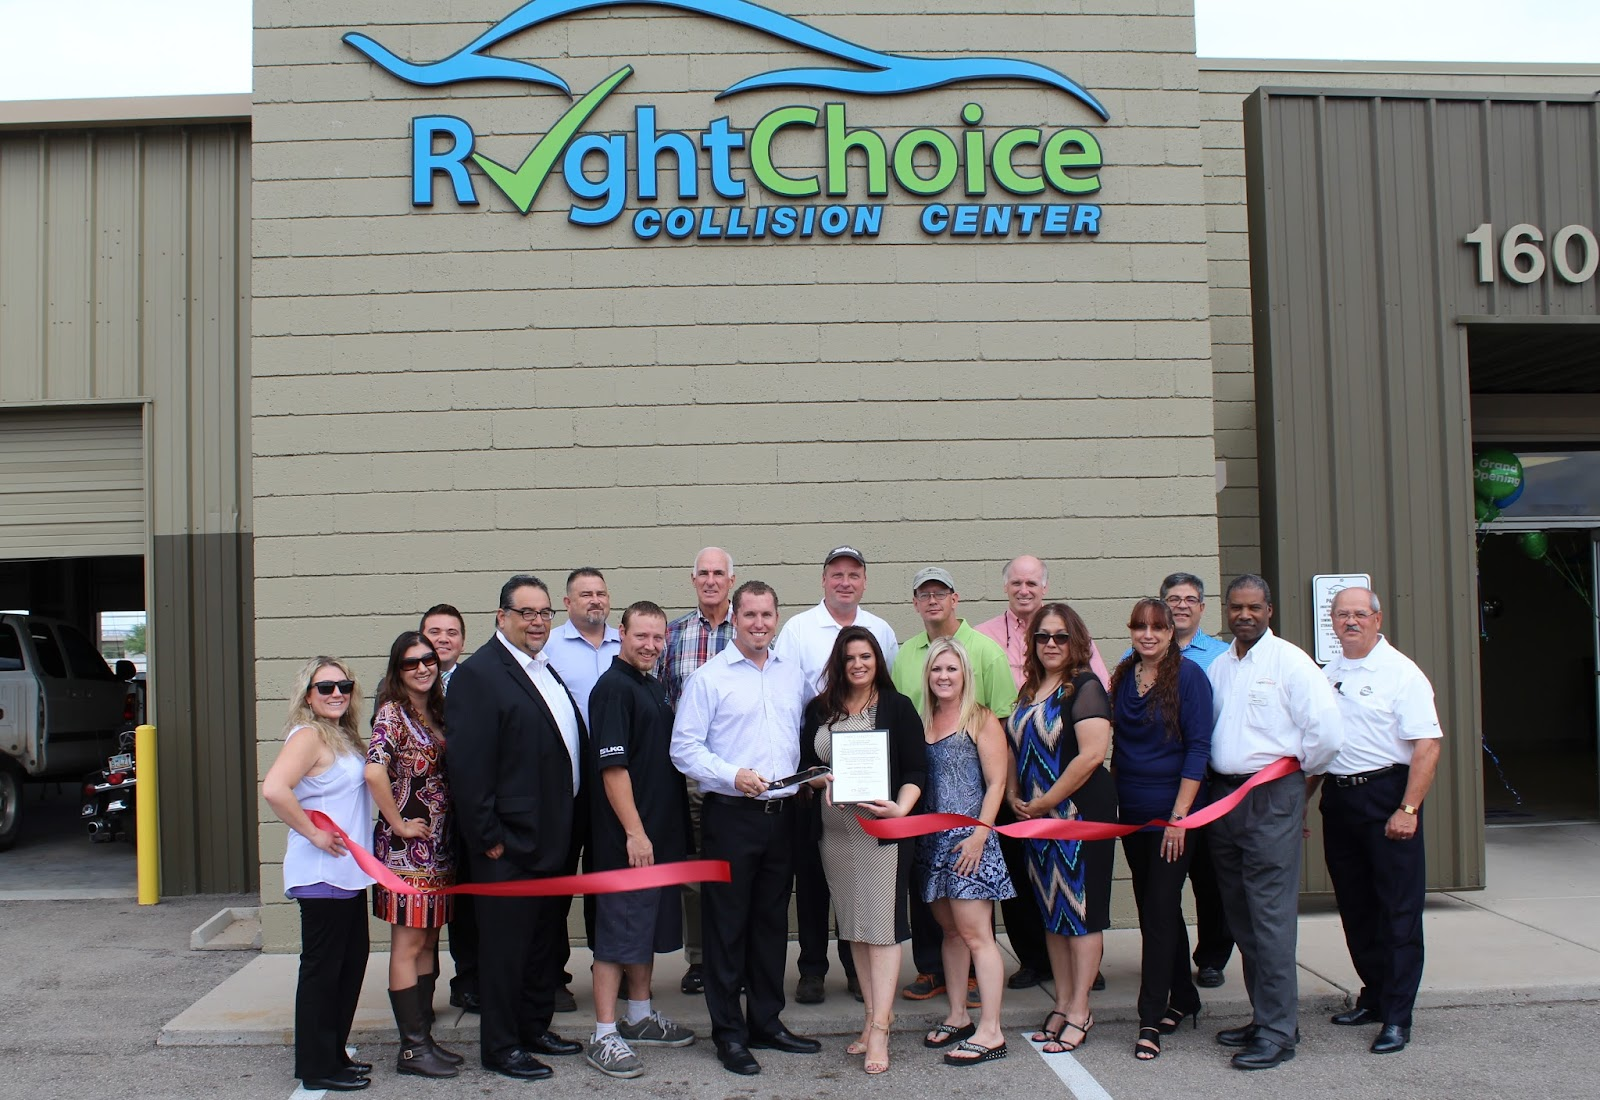 """A big thank you to all who took the time to celebrate our grand opening! We are an independent shop here to serve the community the RIGHT WAY, which makes us the RIGHT CHOICE each and every time. We look forward to serving the automotive needs of the Tucson community.""  Right Choice Collision Center 1601 E. 22nd Street, 85713 (520) 867-6021"